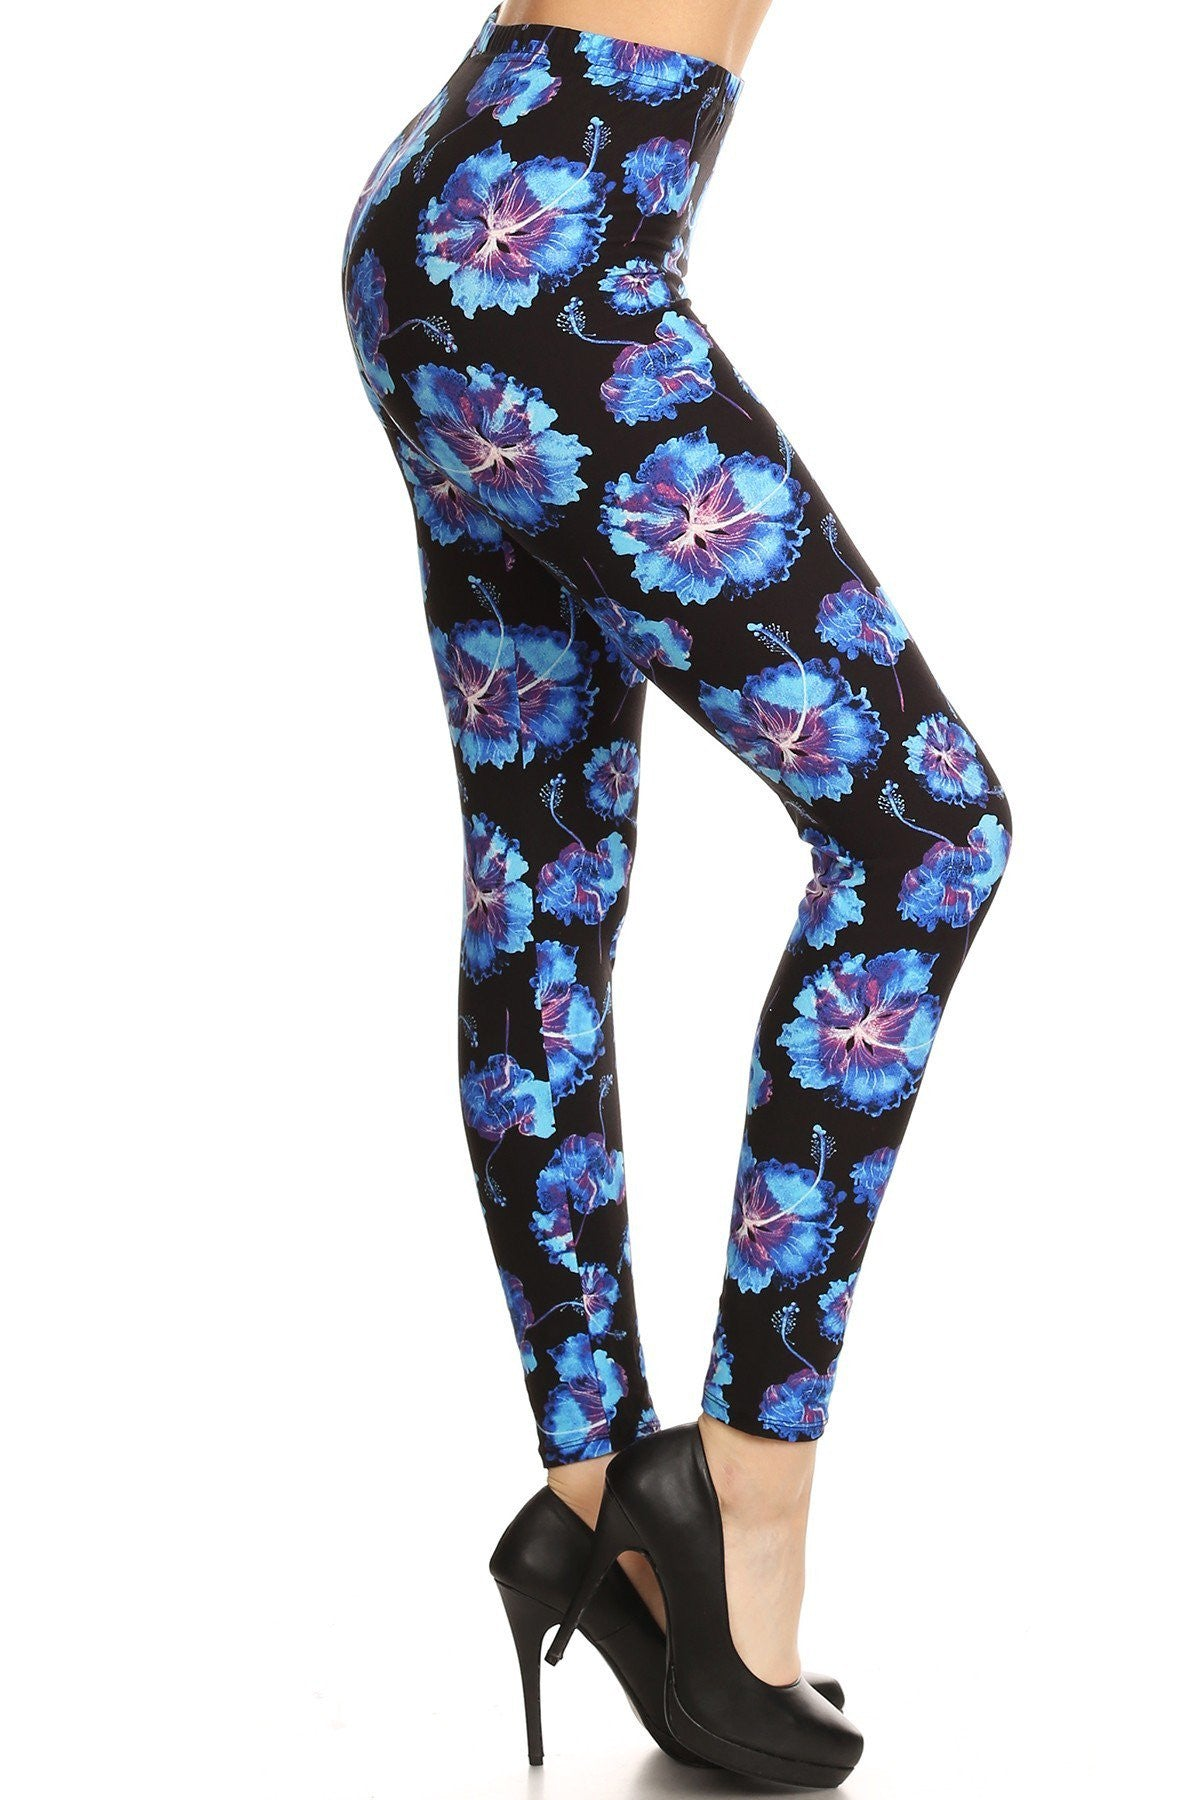 37a83374393 Hibiscus Printed Fit Style Leggings – slayboo